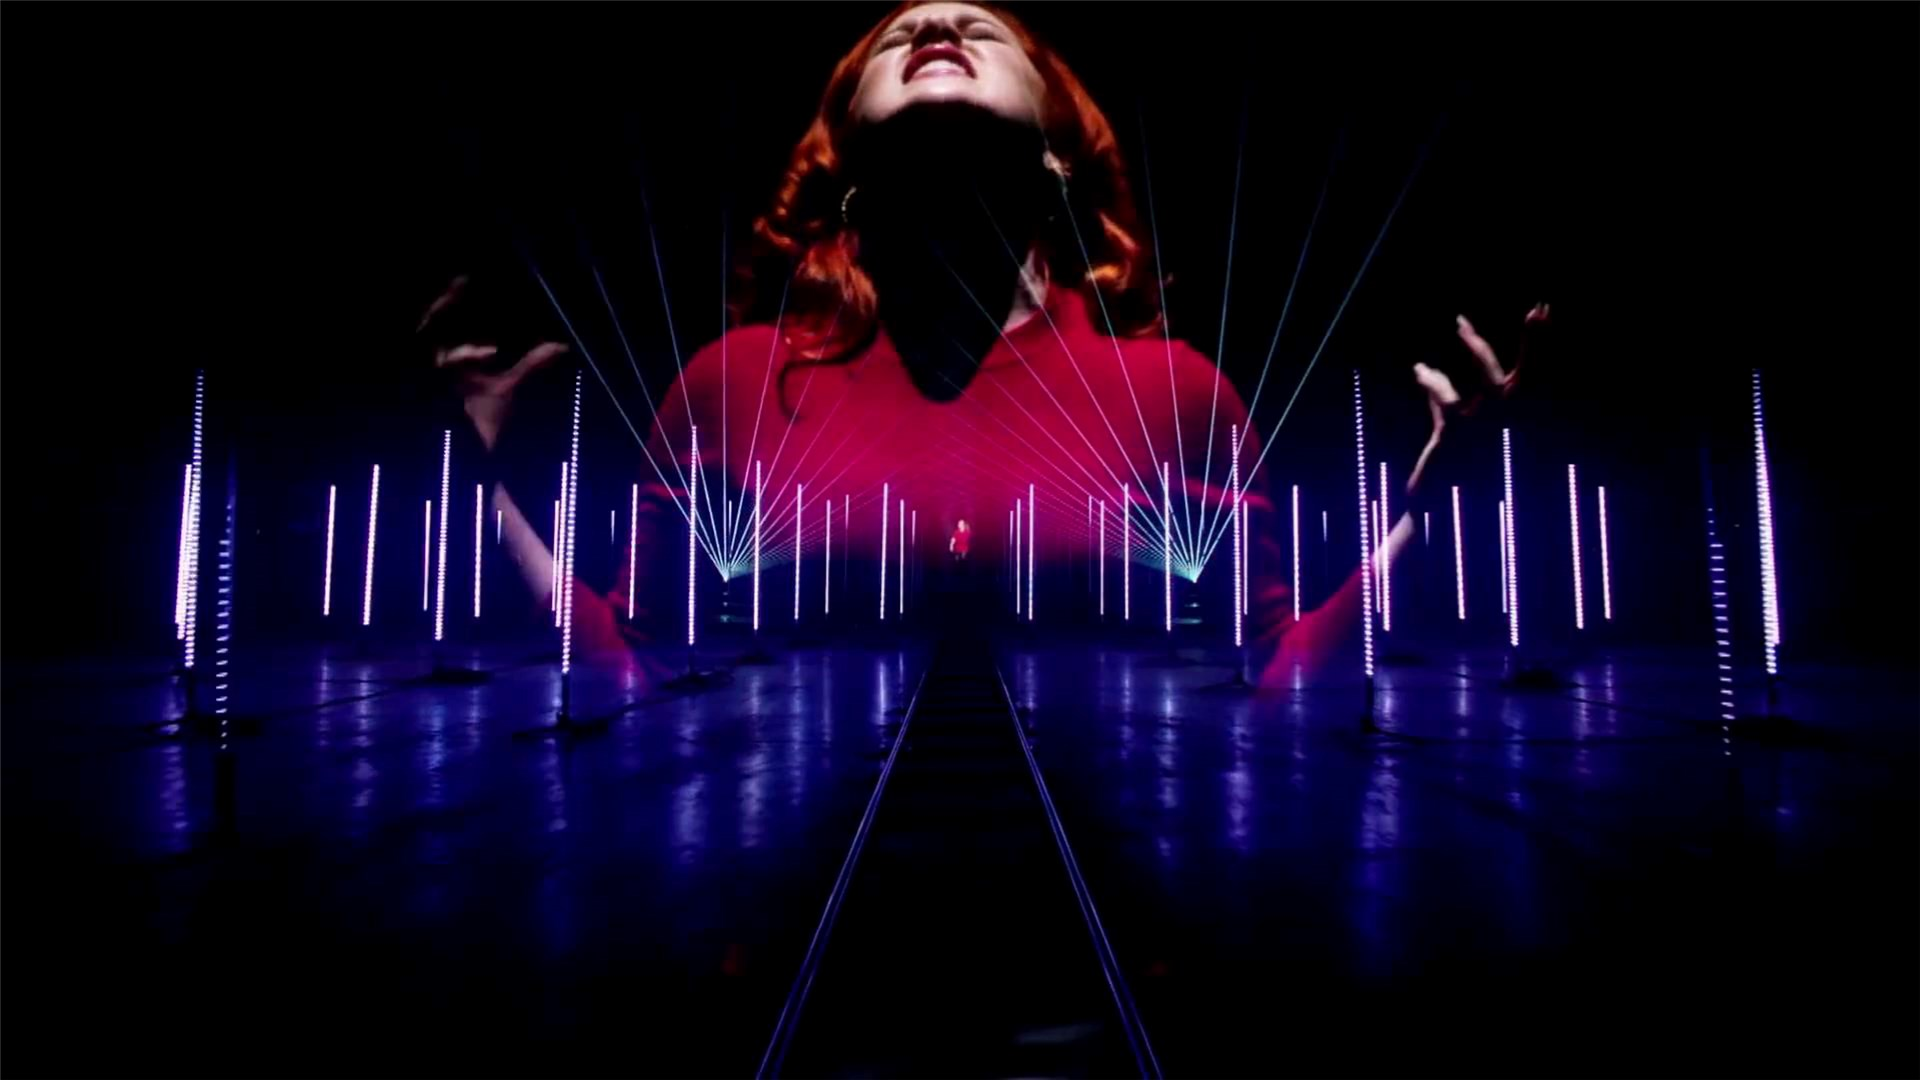 SGM 3D tubes brings vibrancy to Katy B's music video.